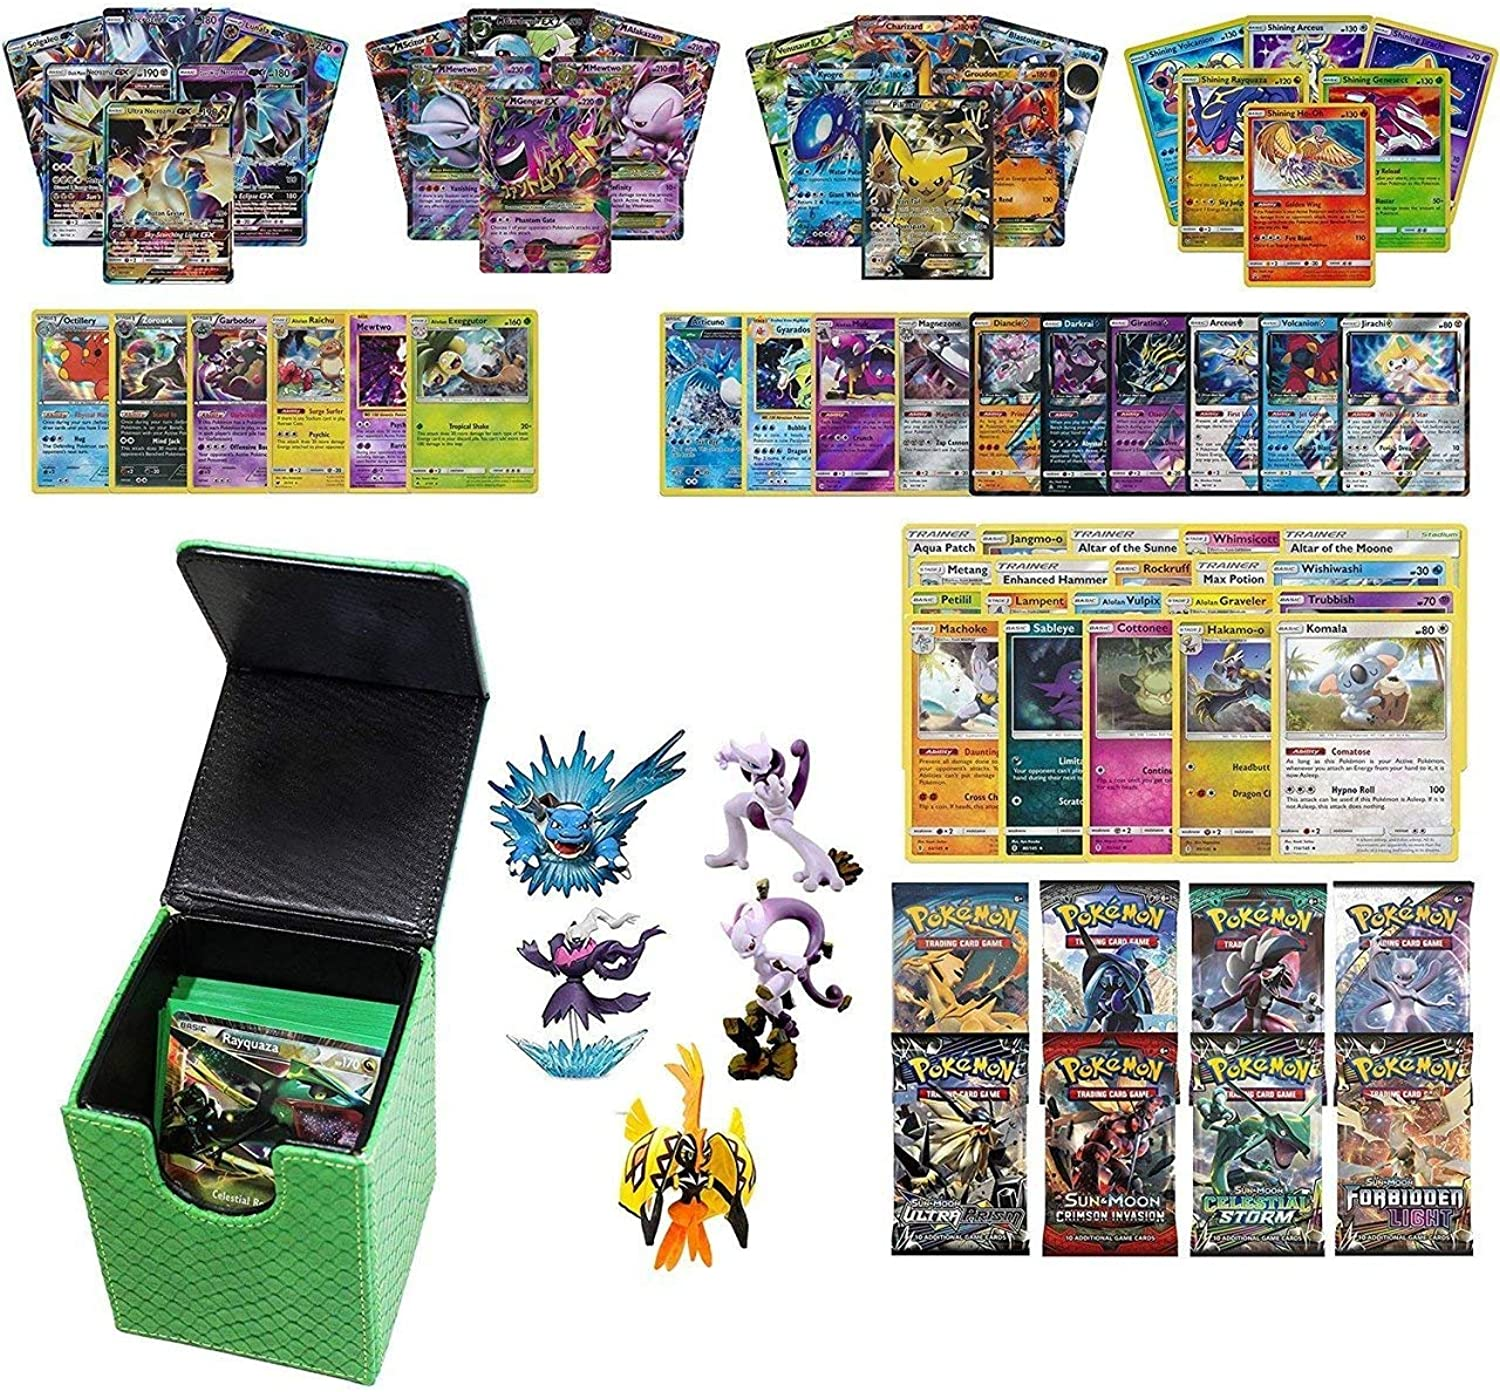 Playoly Pokemon Premium Collection 100 Cards with GX Mega EX Shining Holo 10 Rares 4 Booster Pack Green Dragonhide Deck Box and Figure